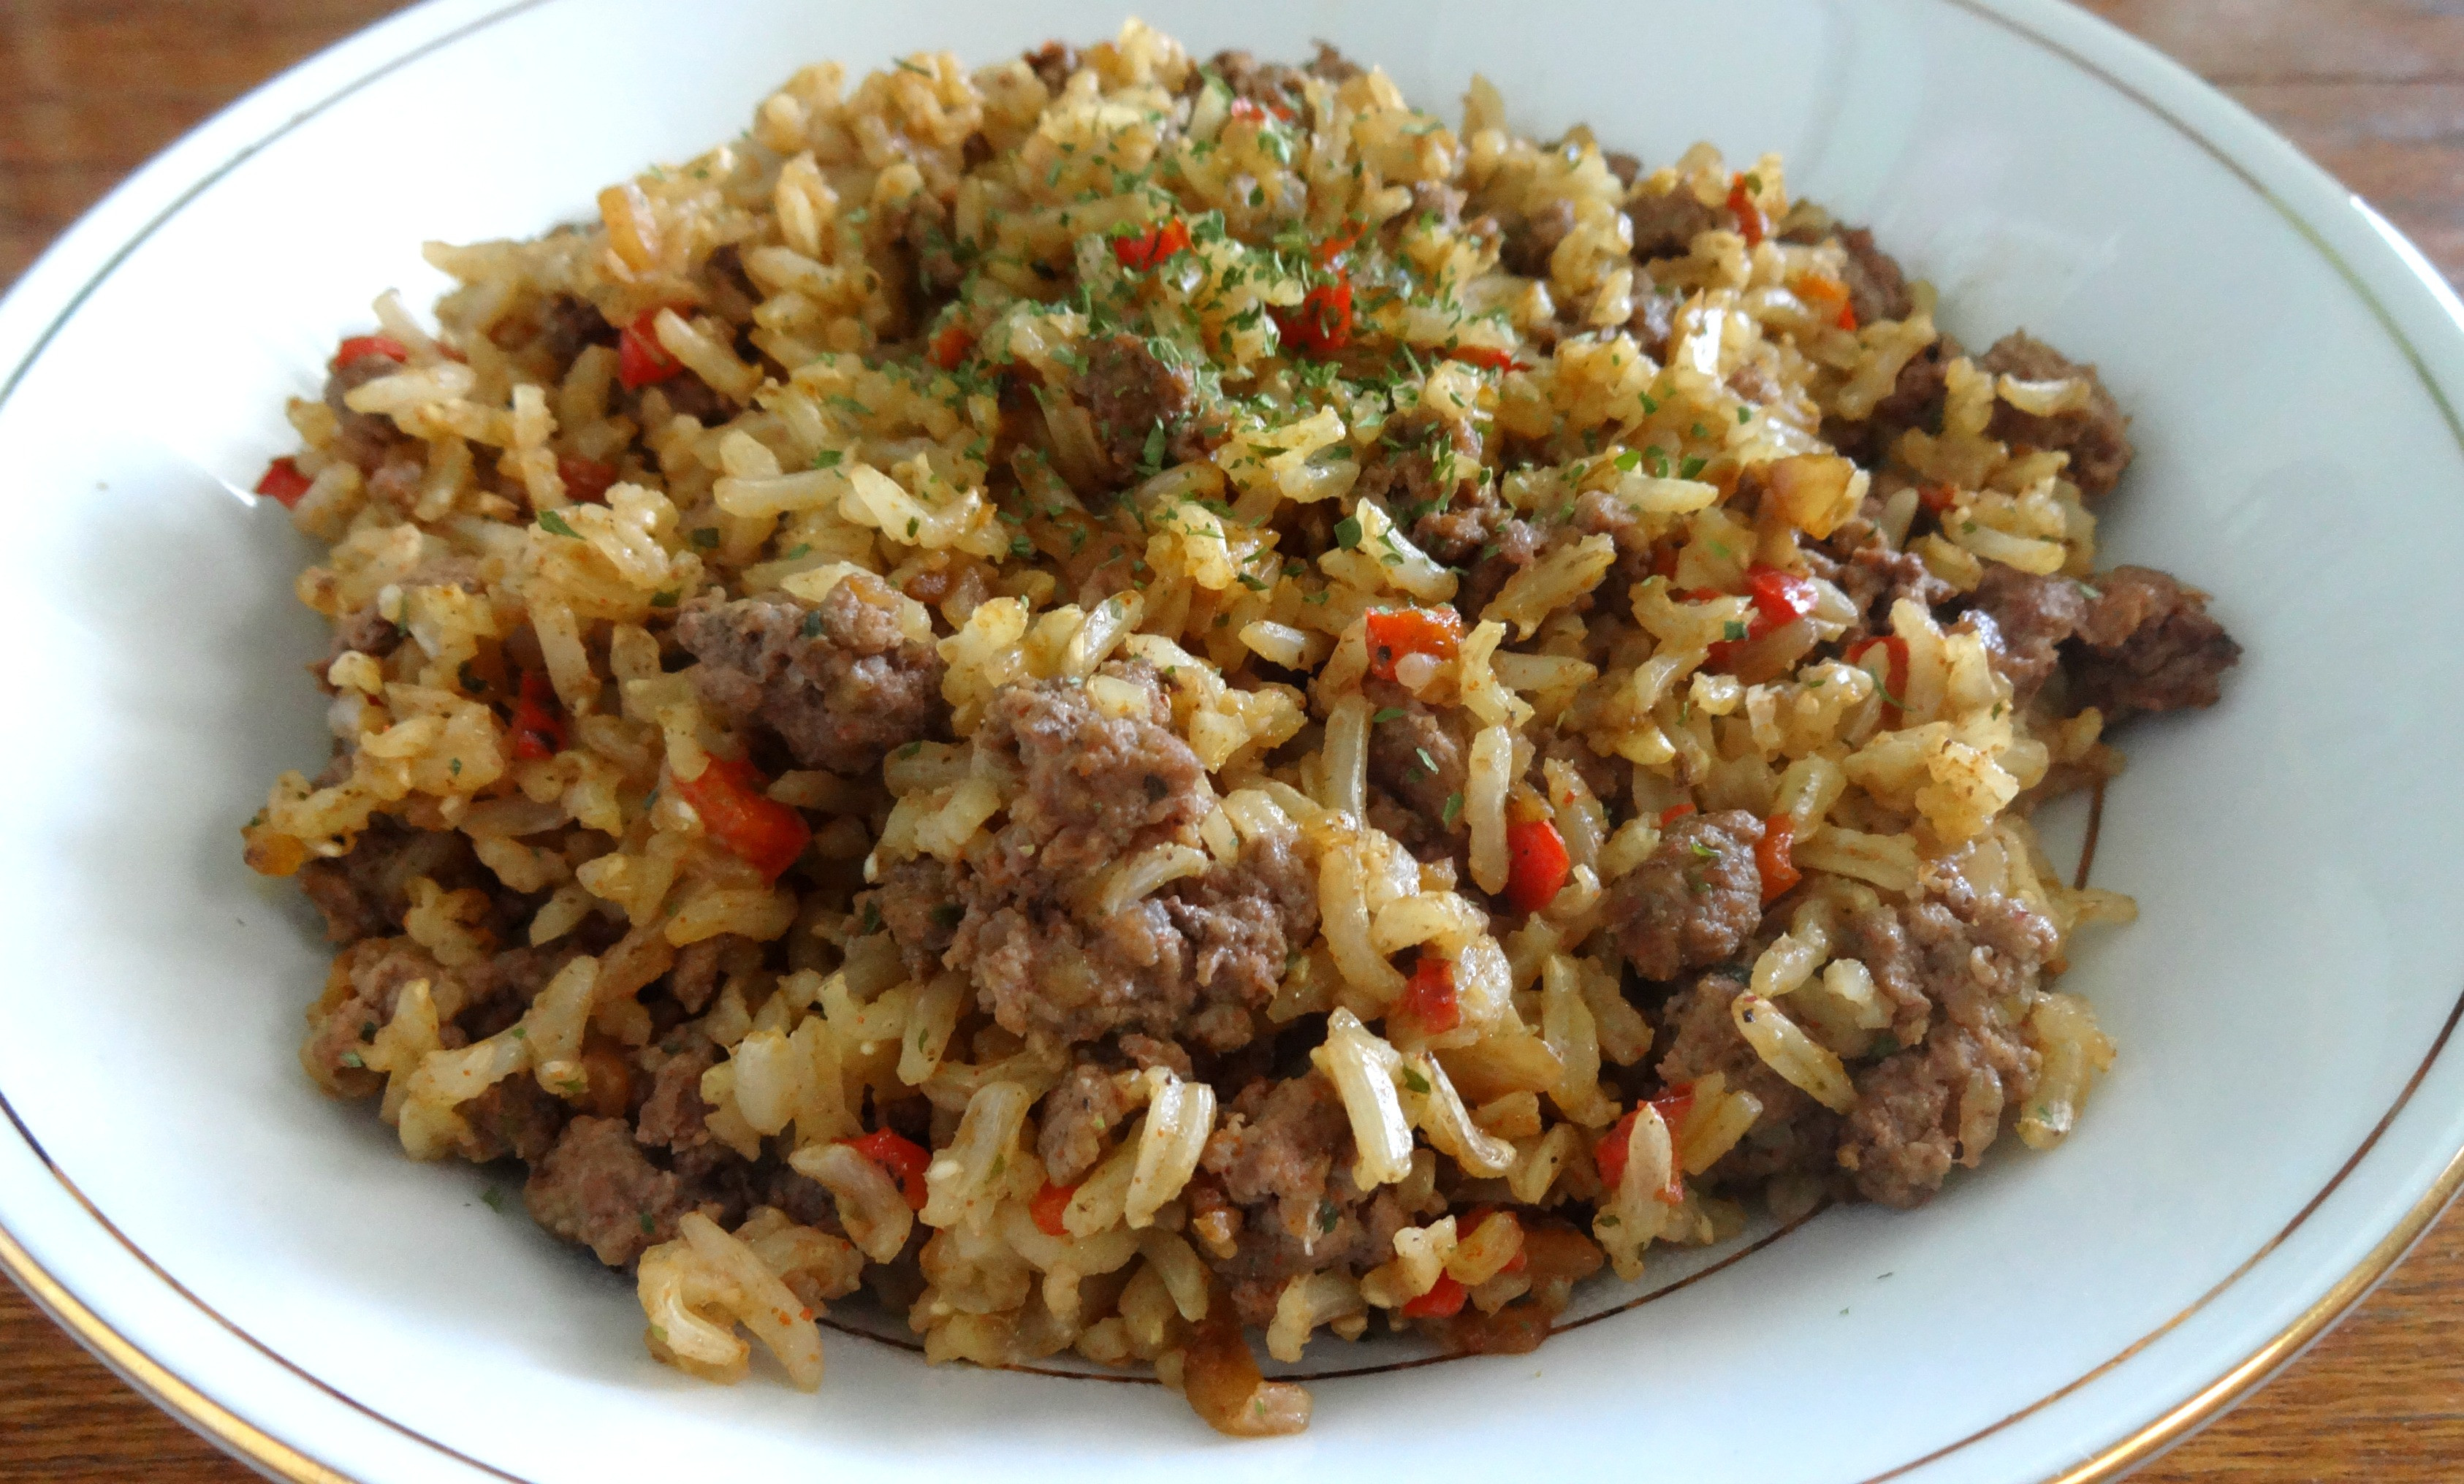 Ground Beef And Rice Recipes Healthy  ground beef and rice recipes healthy